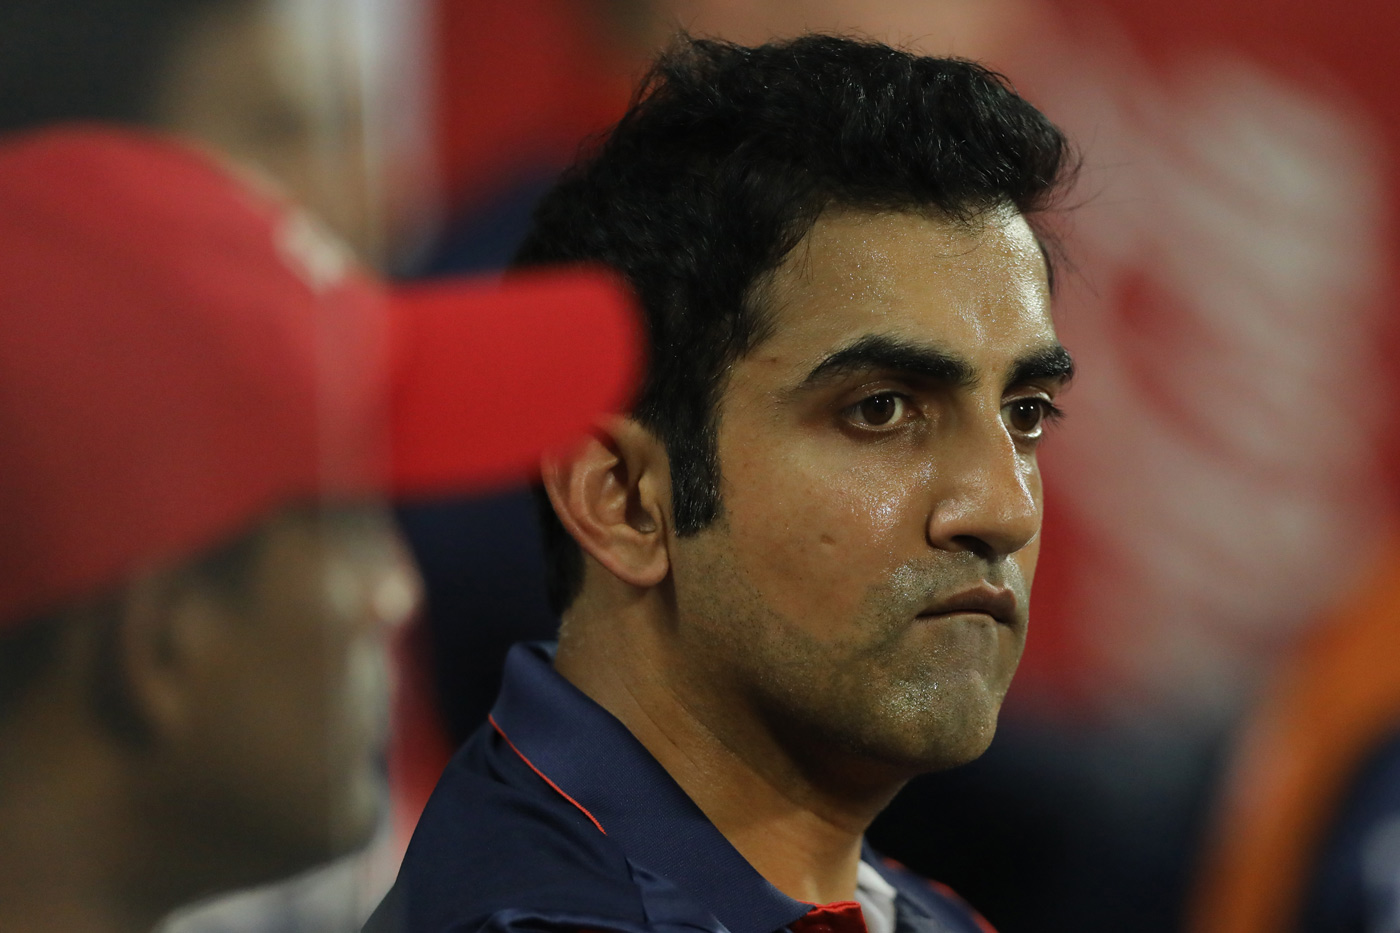 Gautam Gambhir And Others Receive Charge Sheet Over Cheating Case